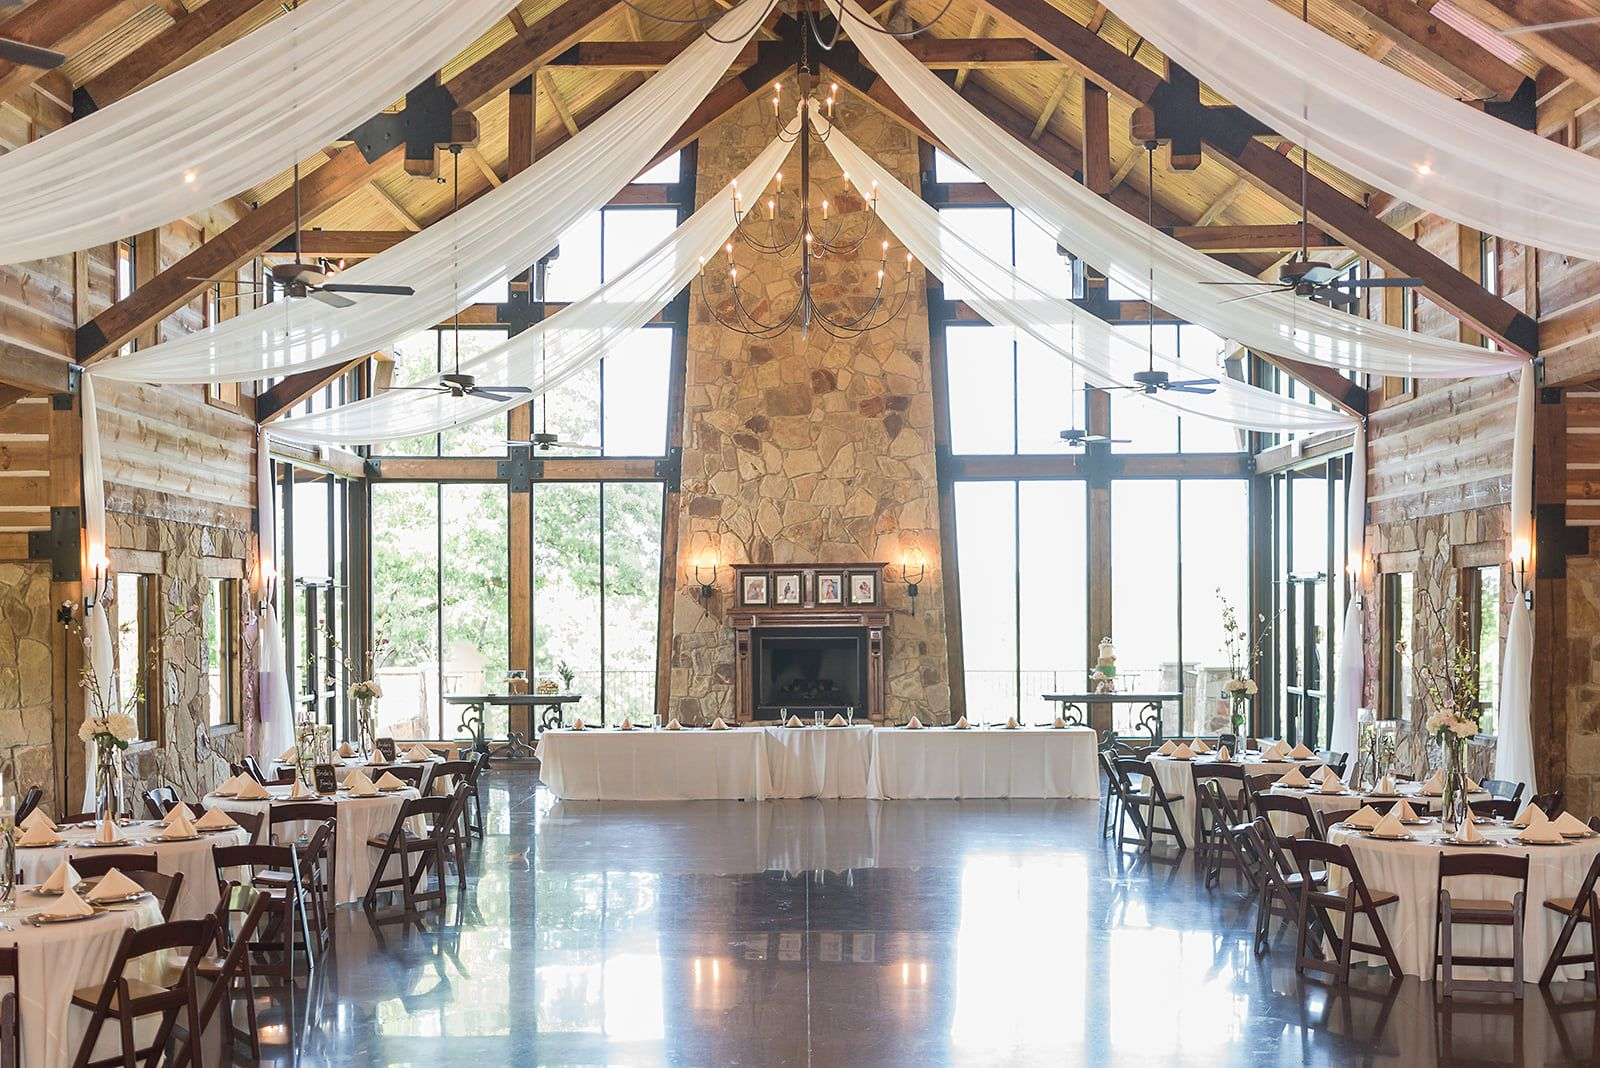 Wedding At The Springs Venue In Aubrey Texas The Lodge Photography Courtesy Of Rebecca L Jones Wedding Venues Texas Dfw Wedding Venues Best Wedding Venues